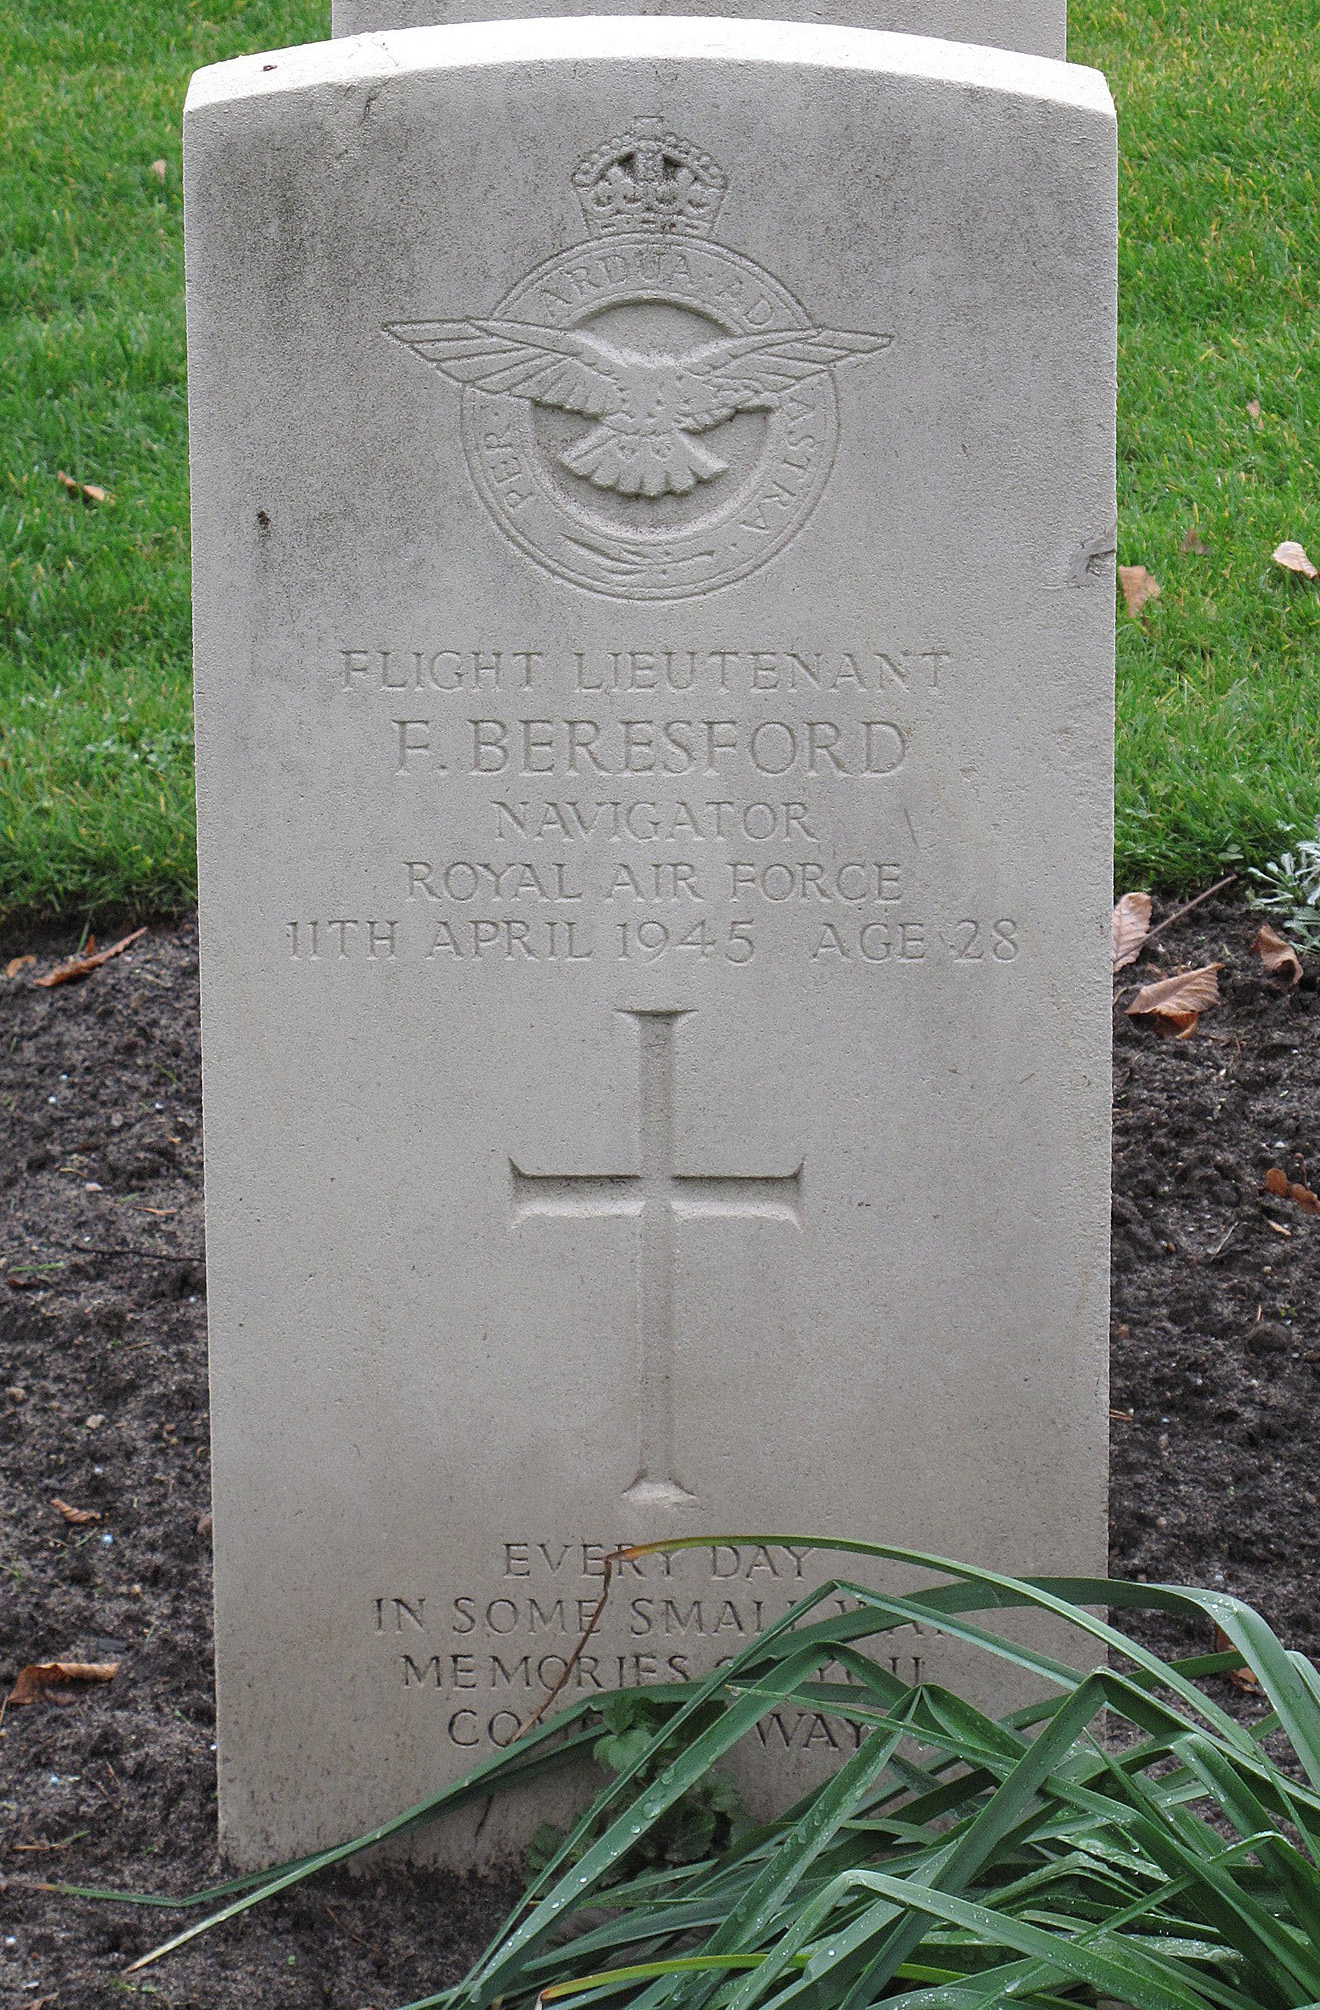 The grave of Frank Beresford today